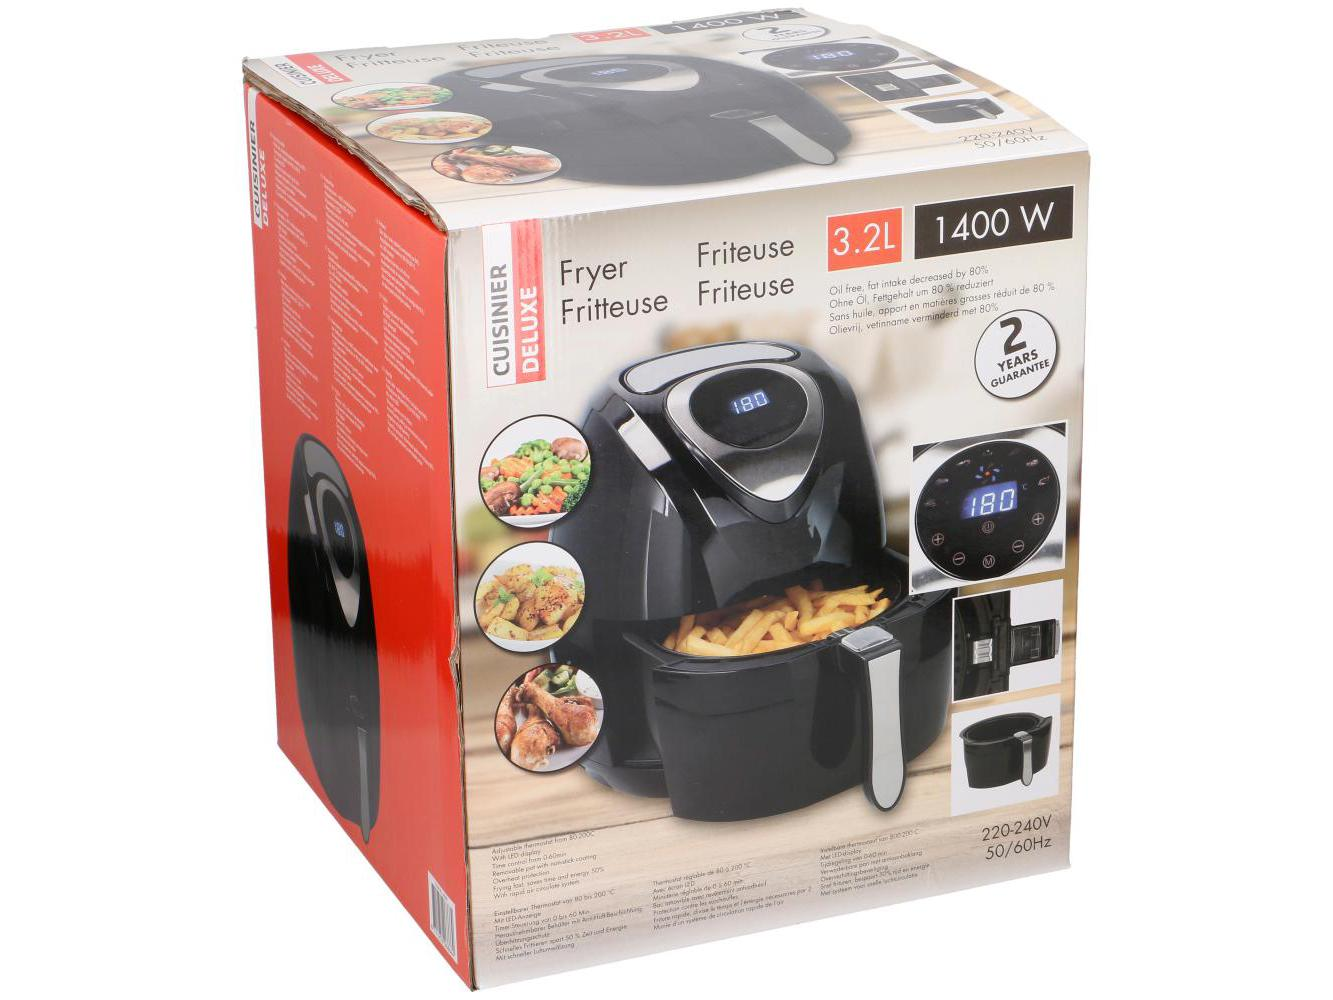 Cuisinier DeLuxe Air Fryer Digitaal